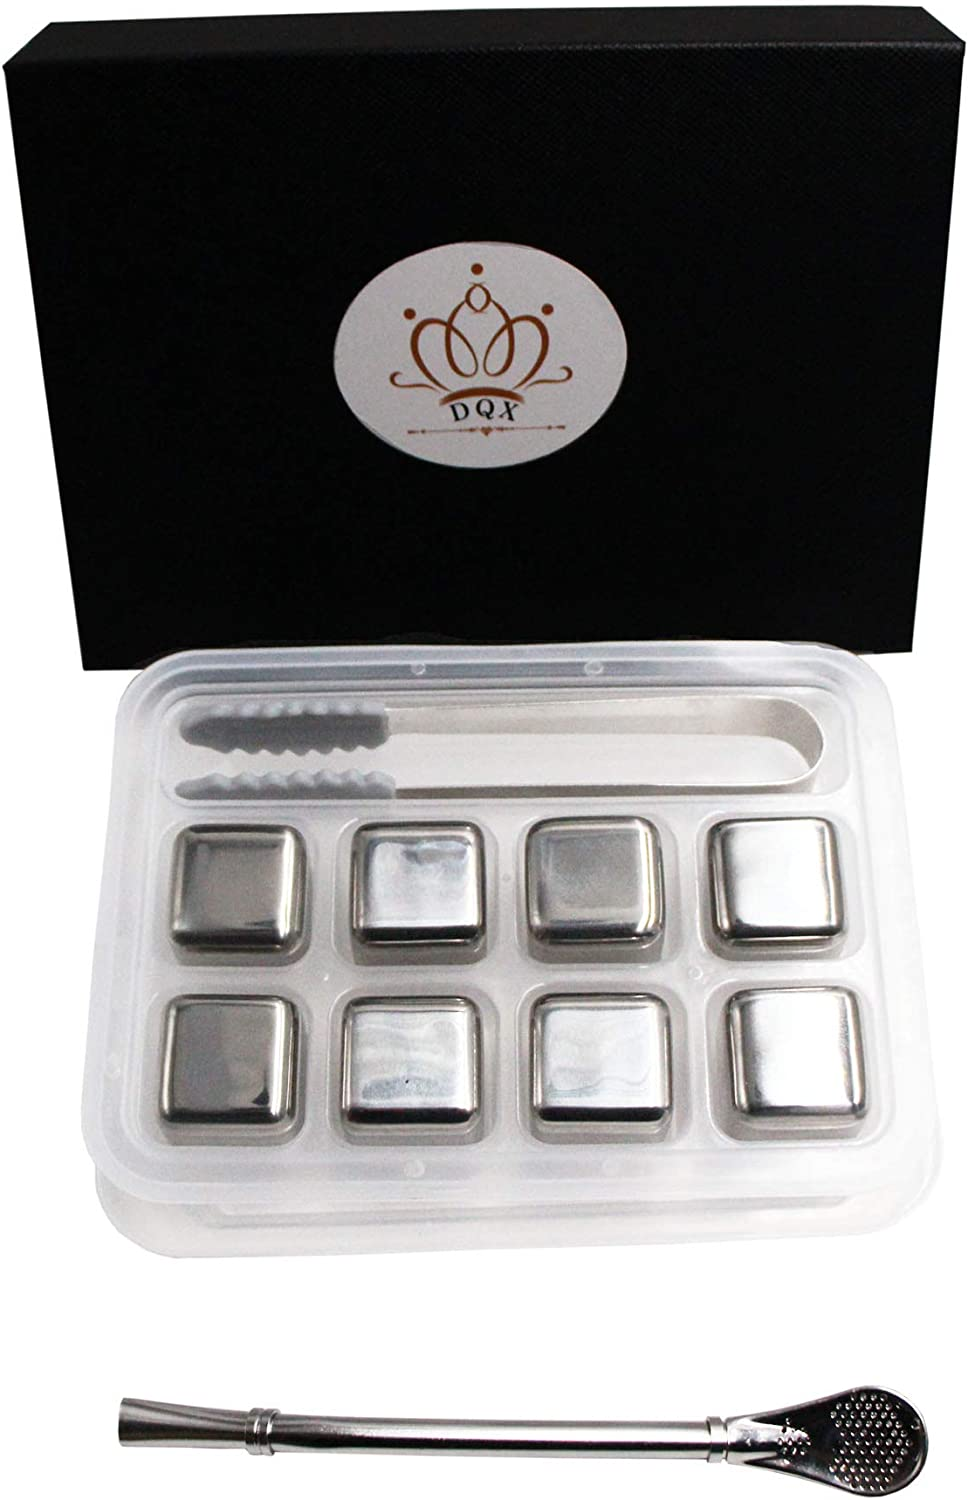 Whiskey Stones Stainless Steel Ice Cubes Gift Set-Metal Beverage Chilling Stones-Stainless Steel Ice Cube-rubber-tipped ice tong with storage tray-Whiskey Gifts for Men